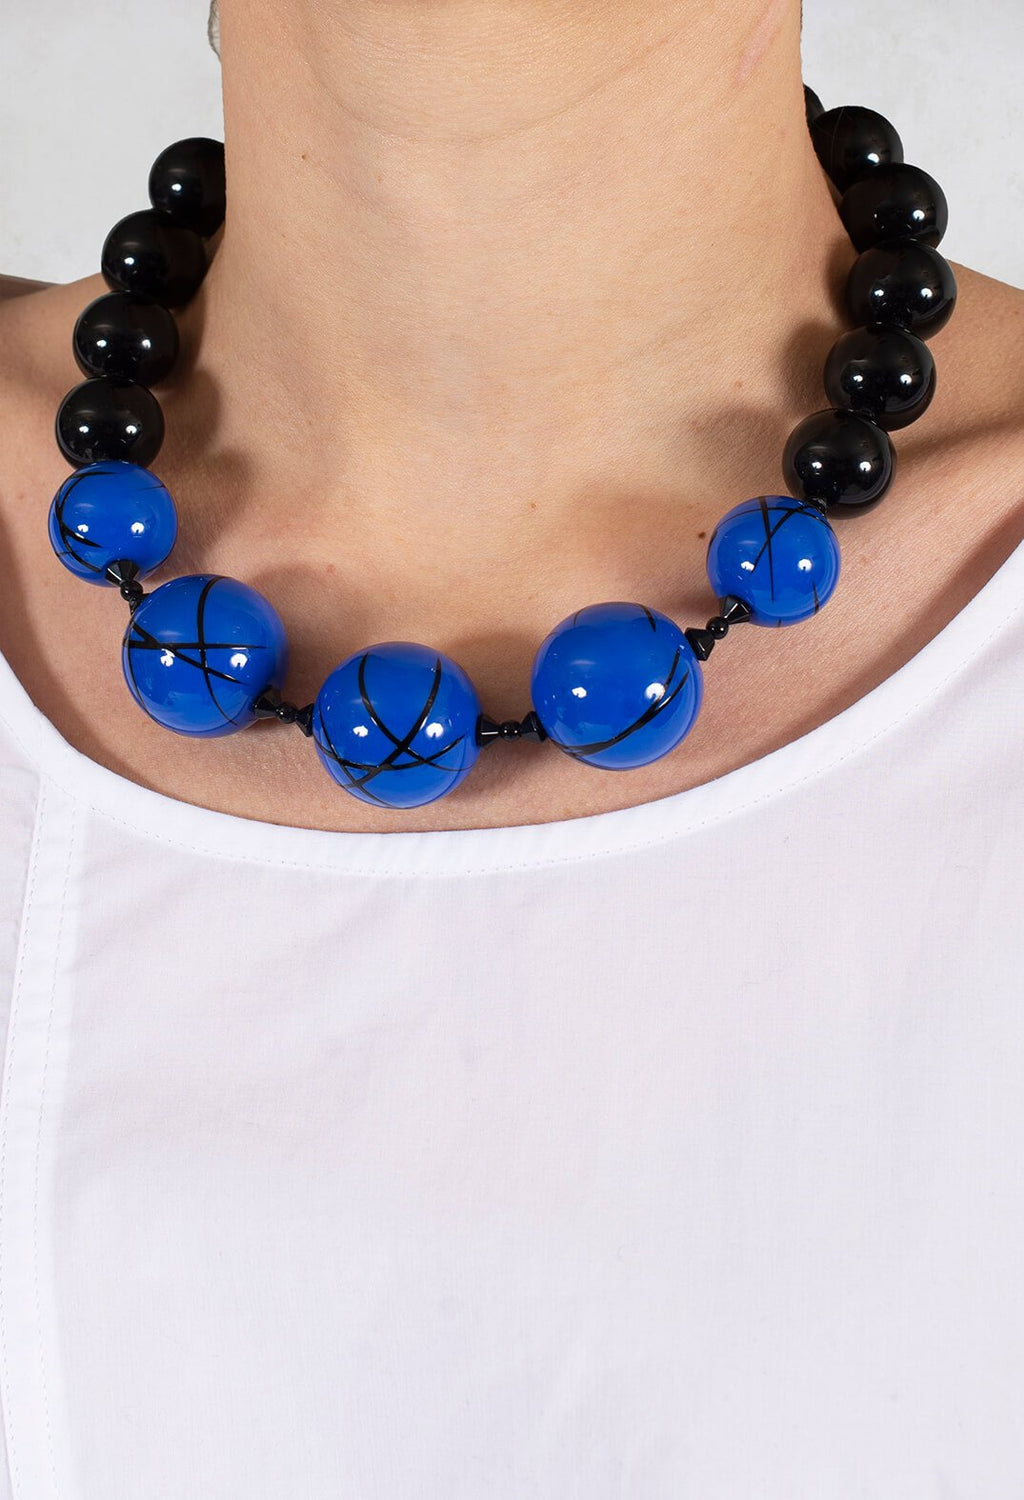 Ball Necklace in Black / Blue